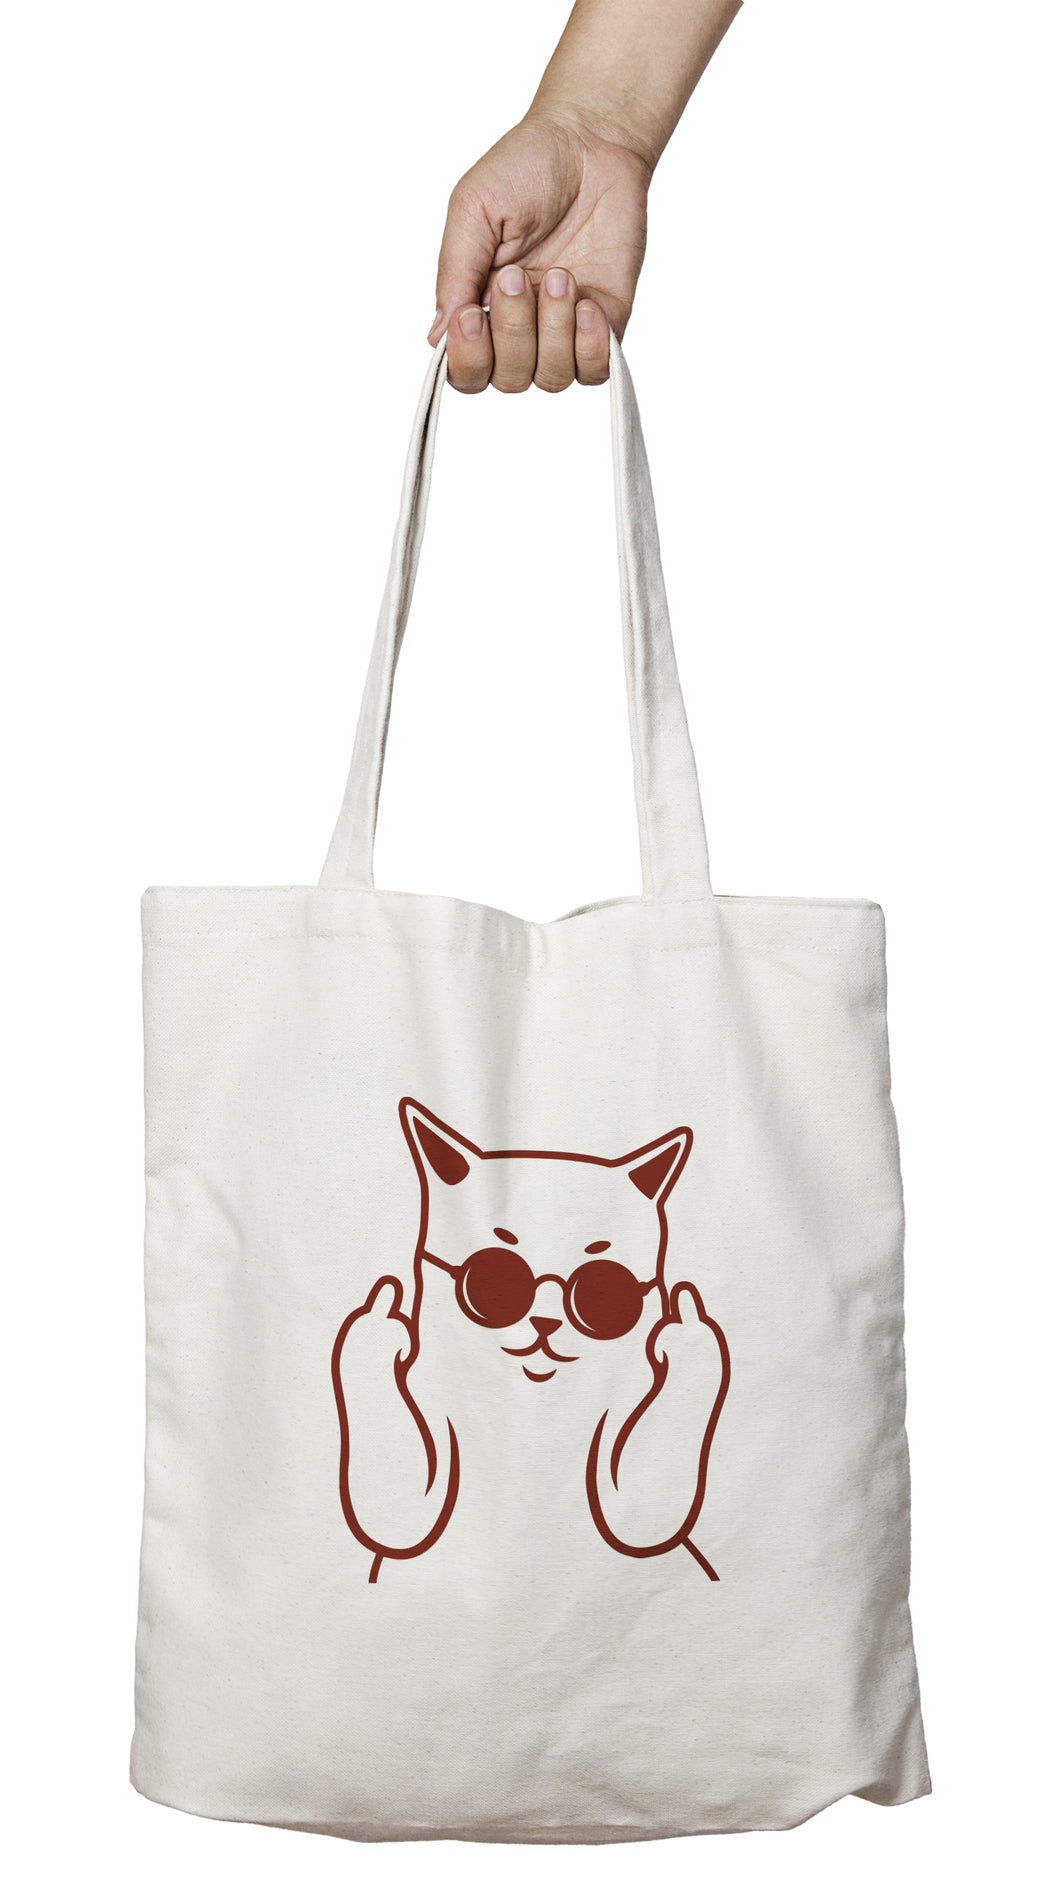 Tote bag chat shopping chat badass fuck bad cat So Custom